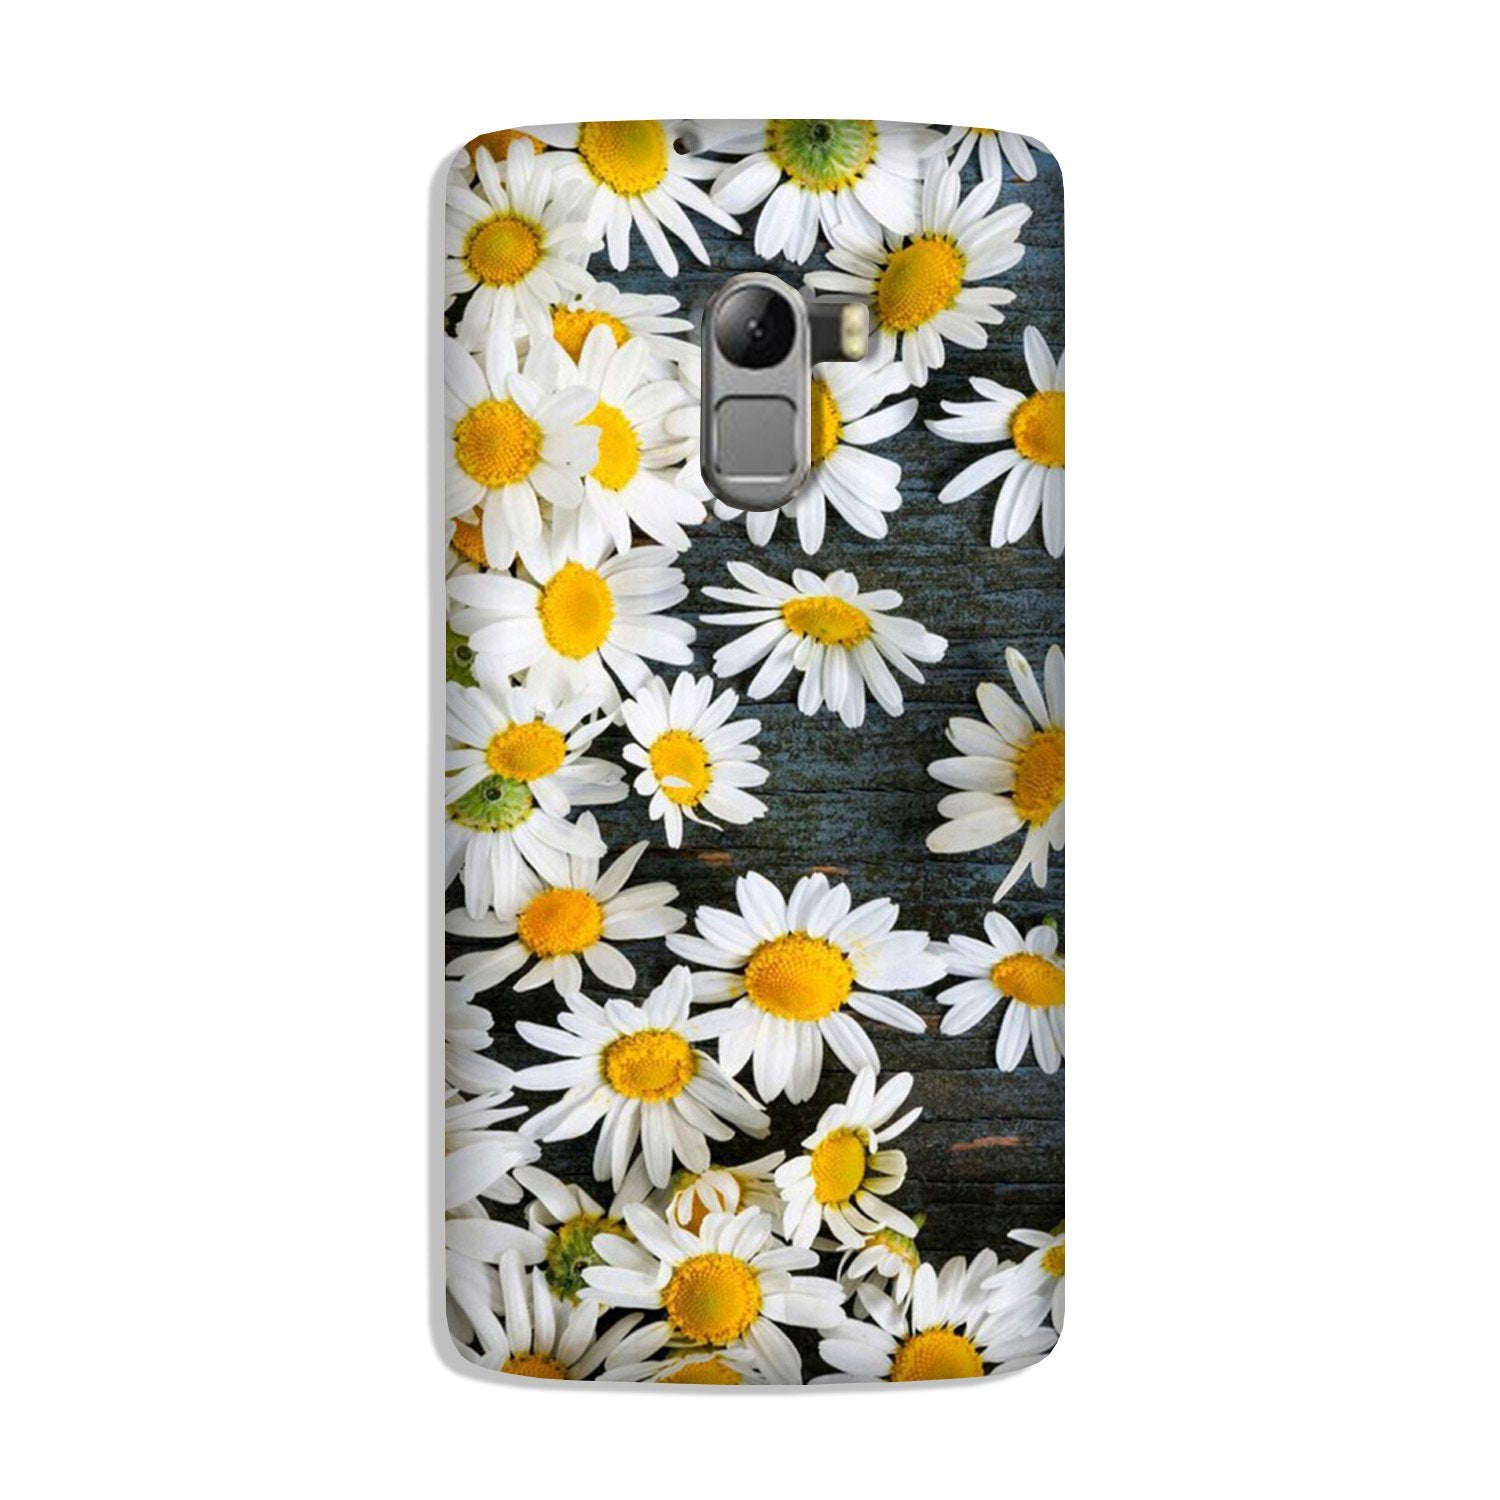 White flowers Case for Lenovo K4 Note